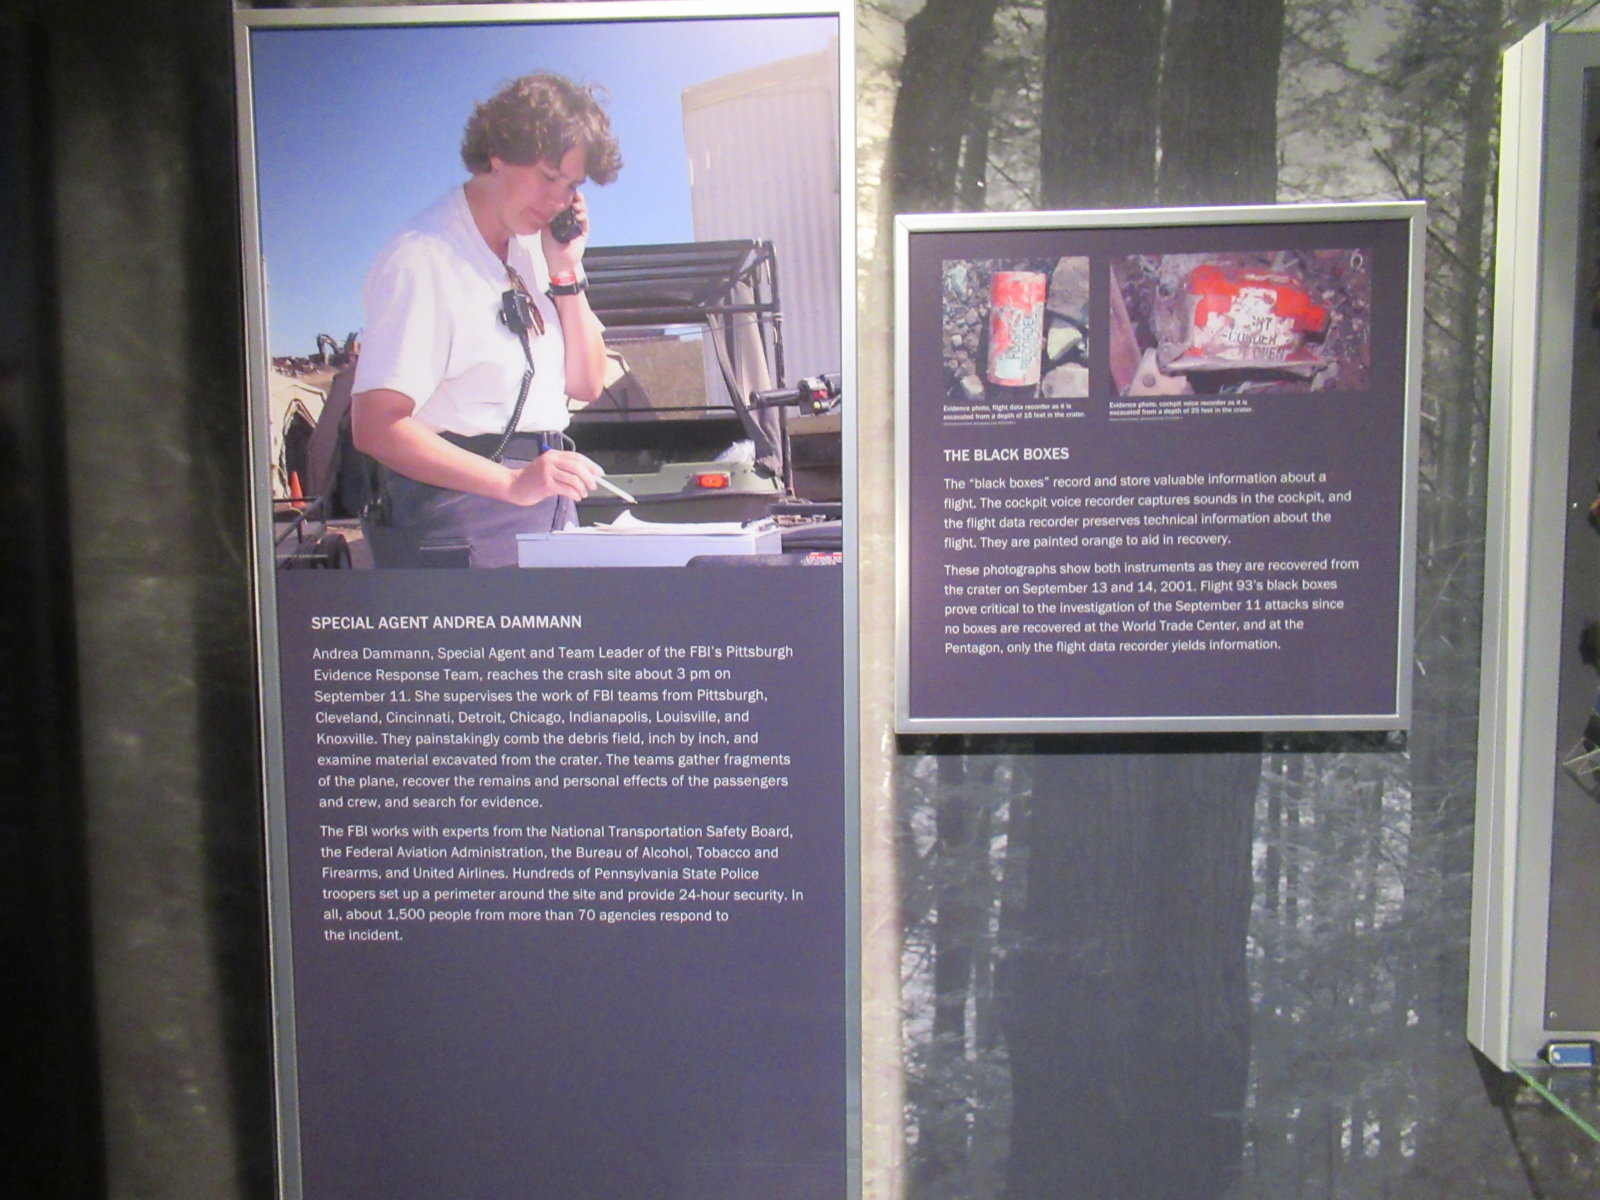 07-13 Flight 93 The Black Box Recorder - Copy